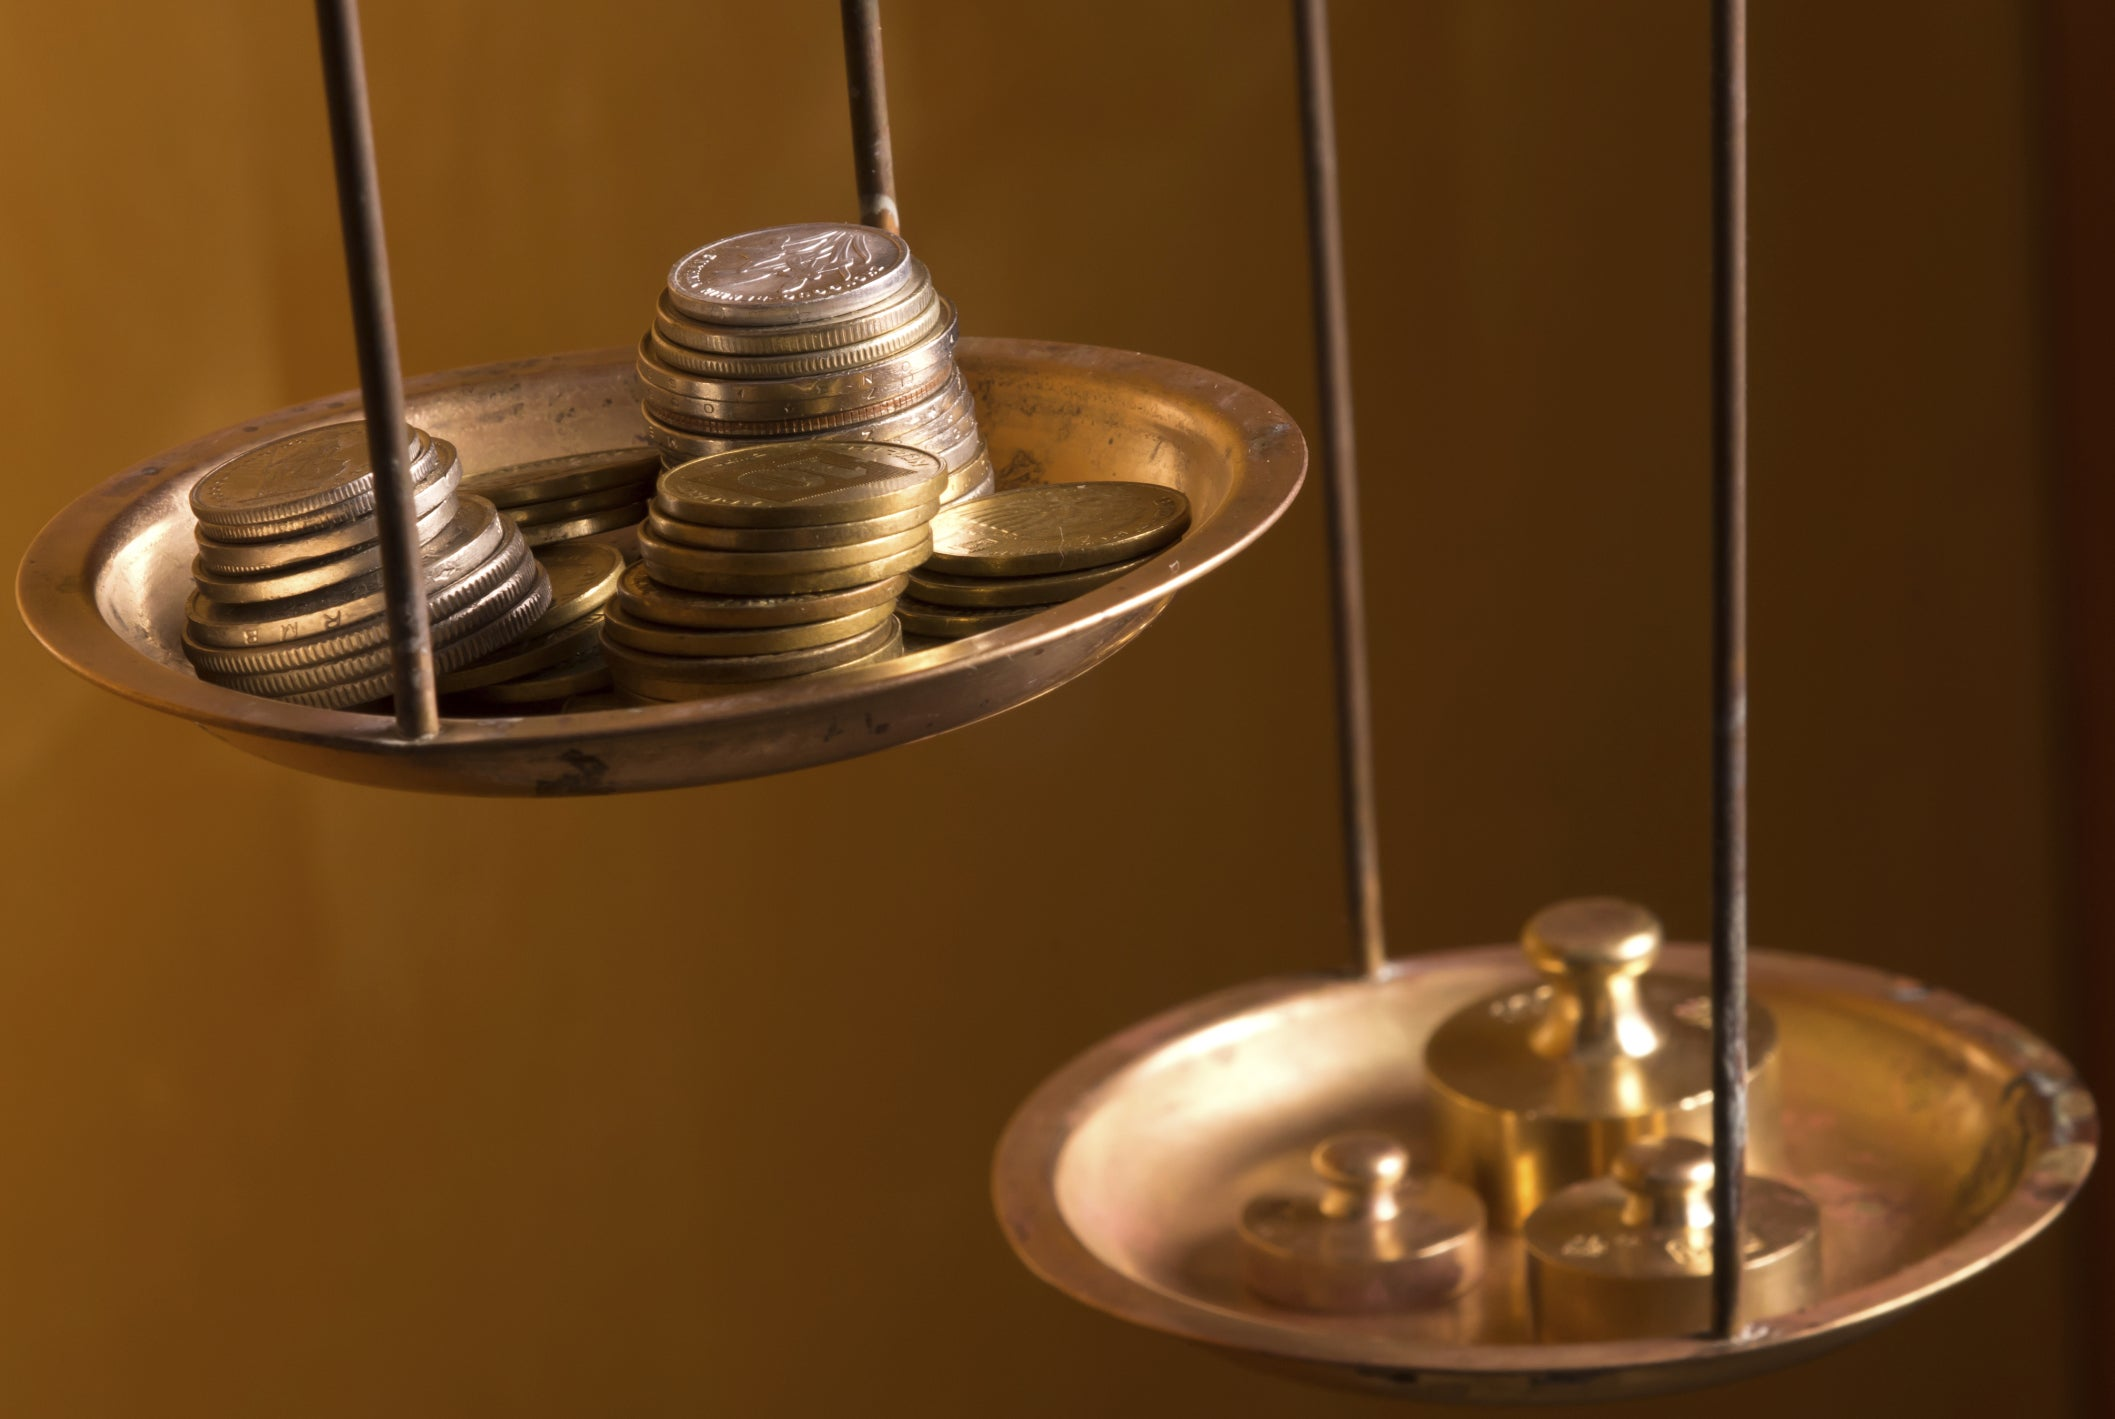 Mutual Funds: Does Size Really Matter?